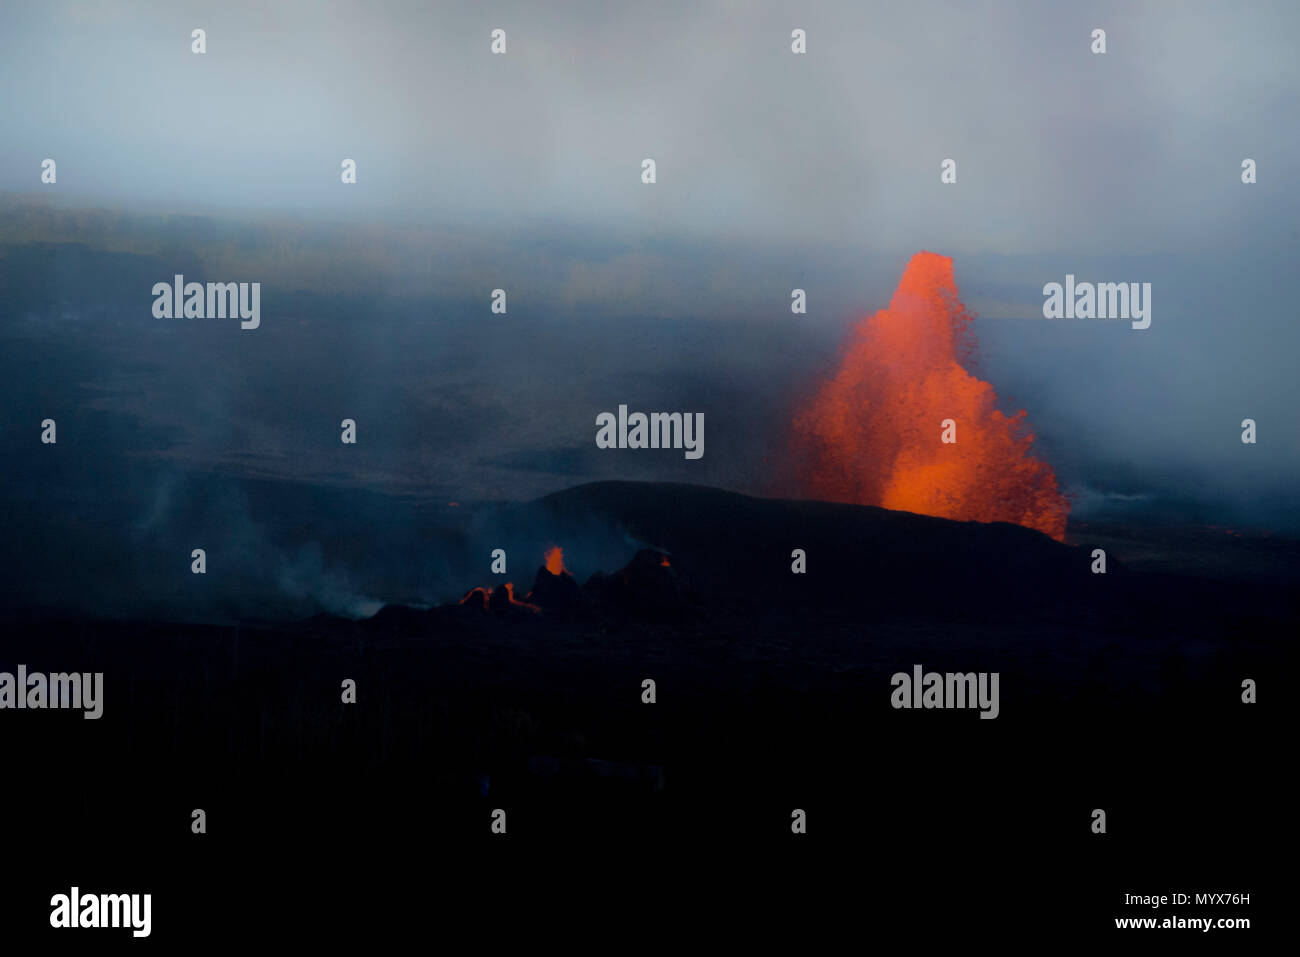 Leilani Estates, Hawaii, May 30, 2018 – Lava continues to fountain at Fissure 8, reaching heights of 130-210 feet. This activity is feeding a lava channel flowing east to the Kapoho Bay area and lava continues to enter the ocean around the Vacationland subdivision area. Volcanic gas emissions remain very high from the fissure eruptions. At the request of the state, FEMA staff are on the ground to support local officials with life-saving emergency protective measures, debris removal, and the repair, replacement, or restoration of disaster-damaged publicly-owned facilities. Photo: Grace Simoneau - Stock Image